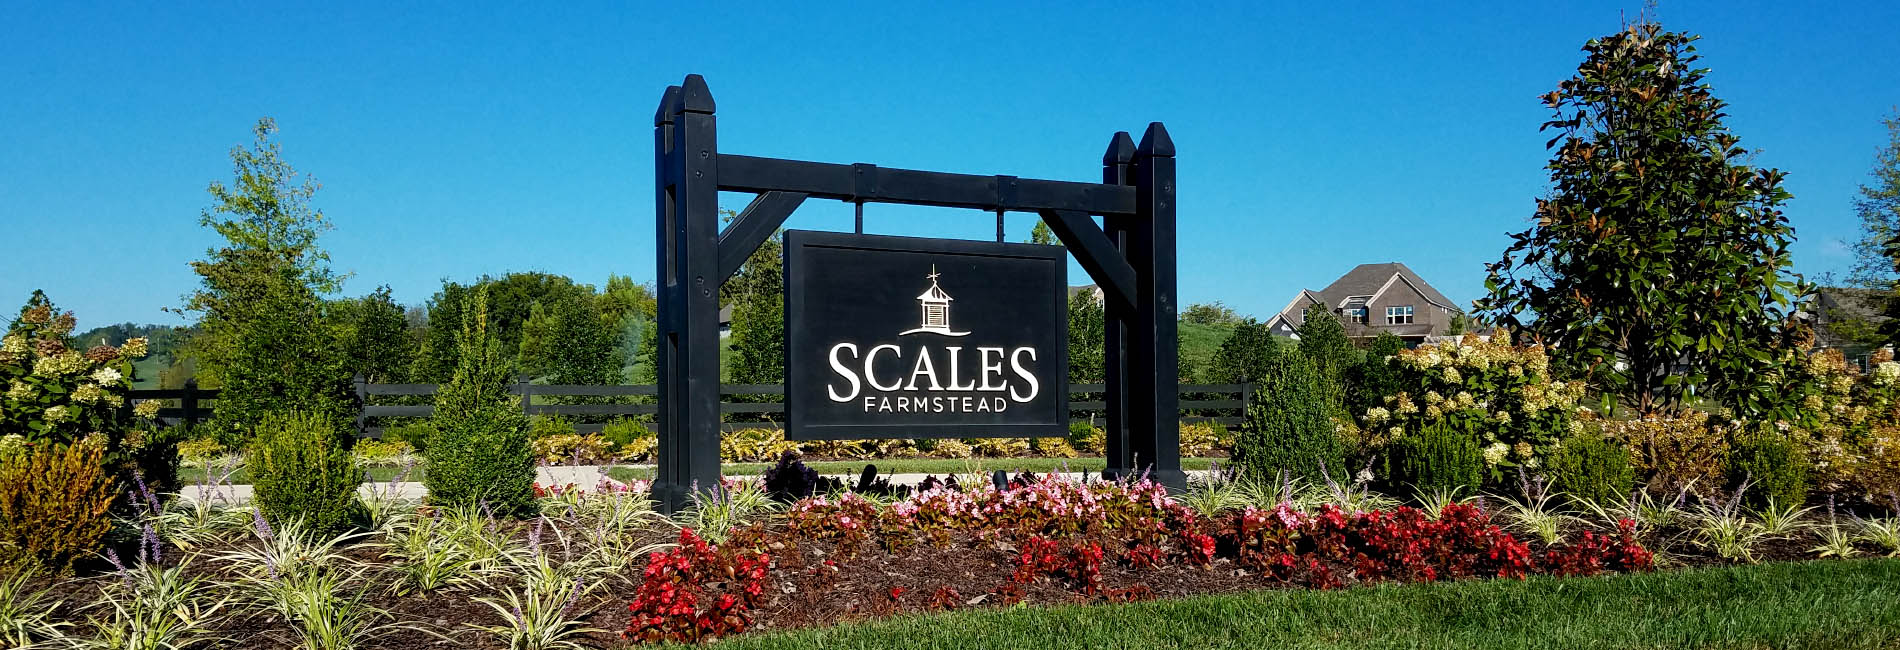 Scales Farmstead